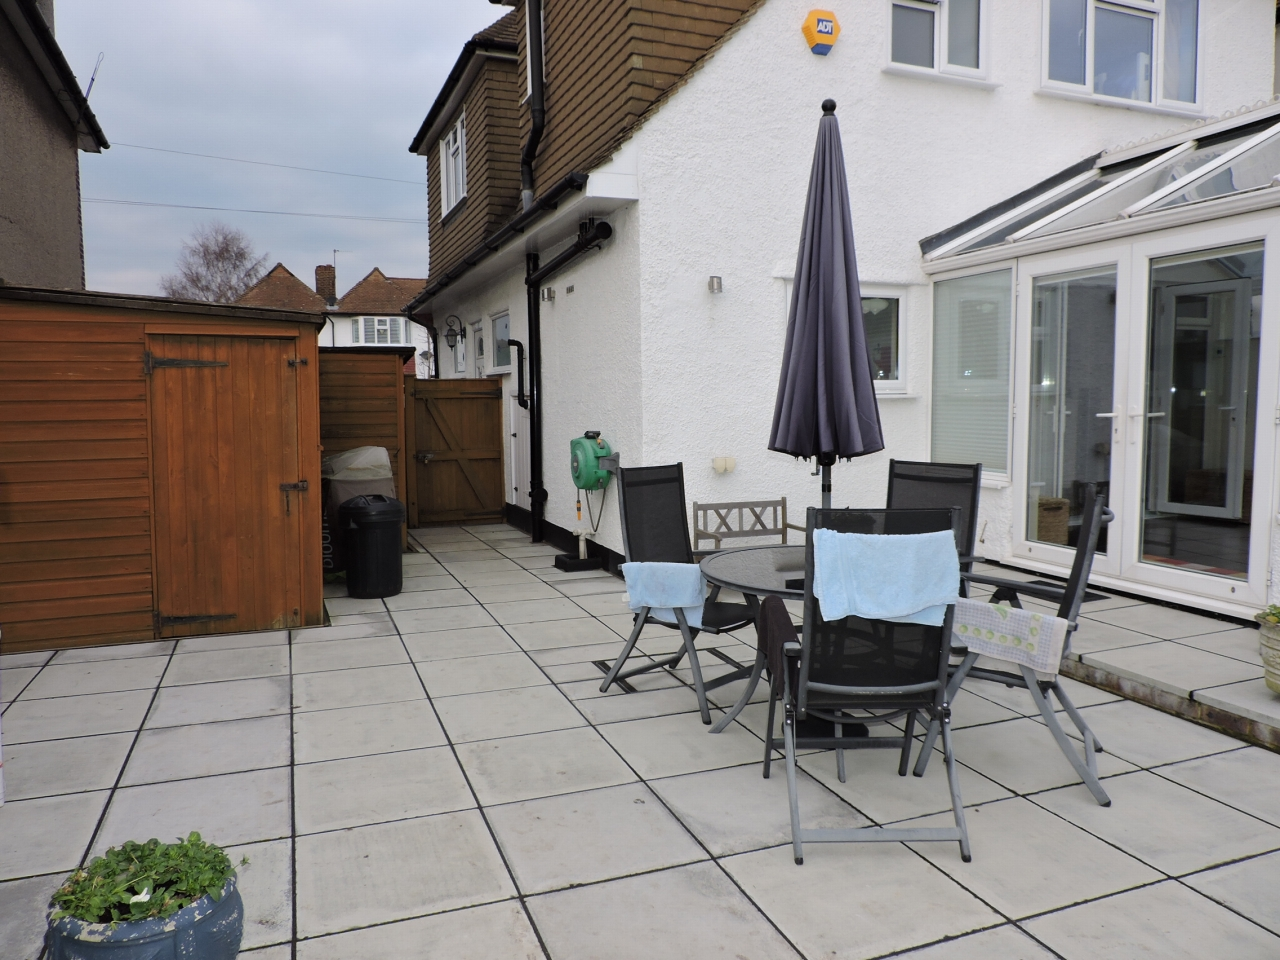 4 bedroom detached house SSTC in New Malden - Photograph 15